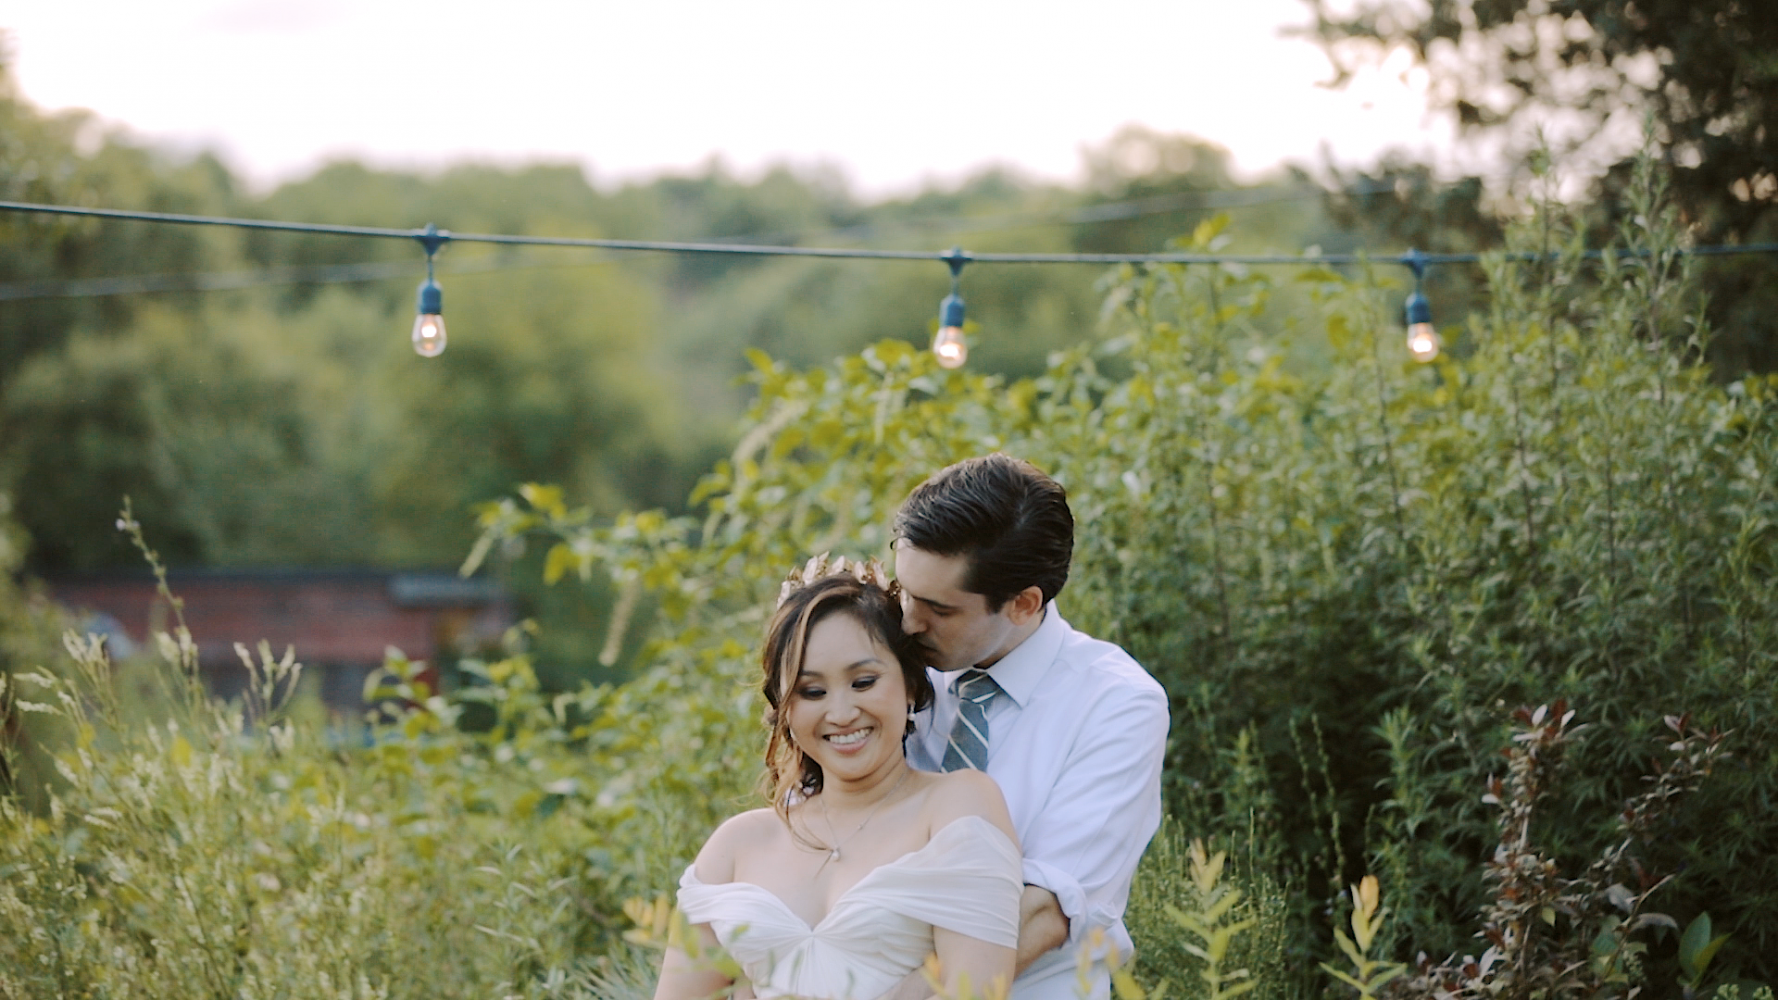 Matt + Elie | Blooming Grove, New York | Blooming Hill Farm